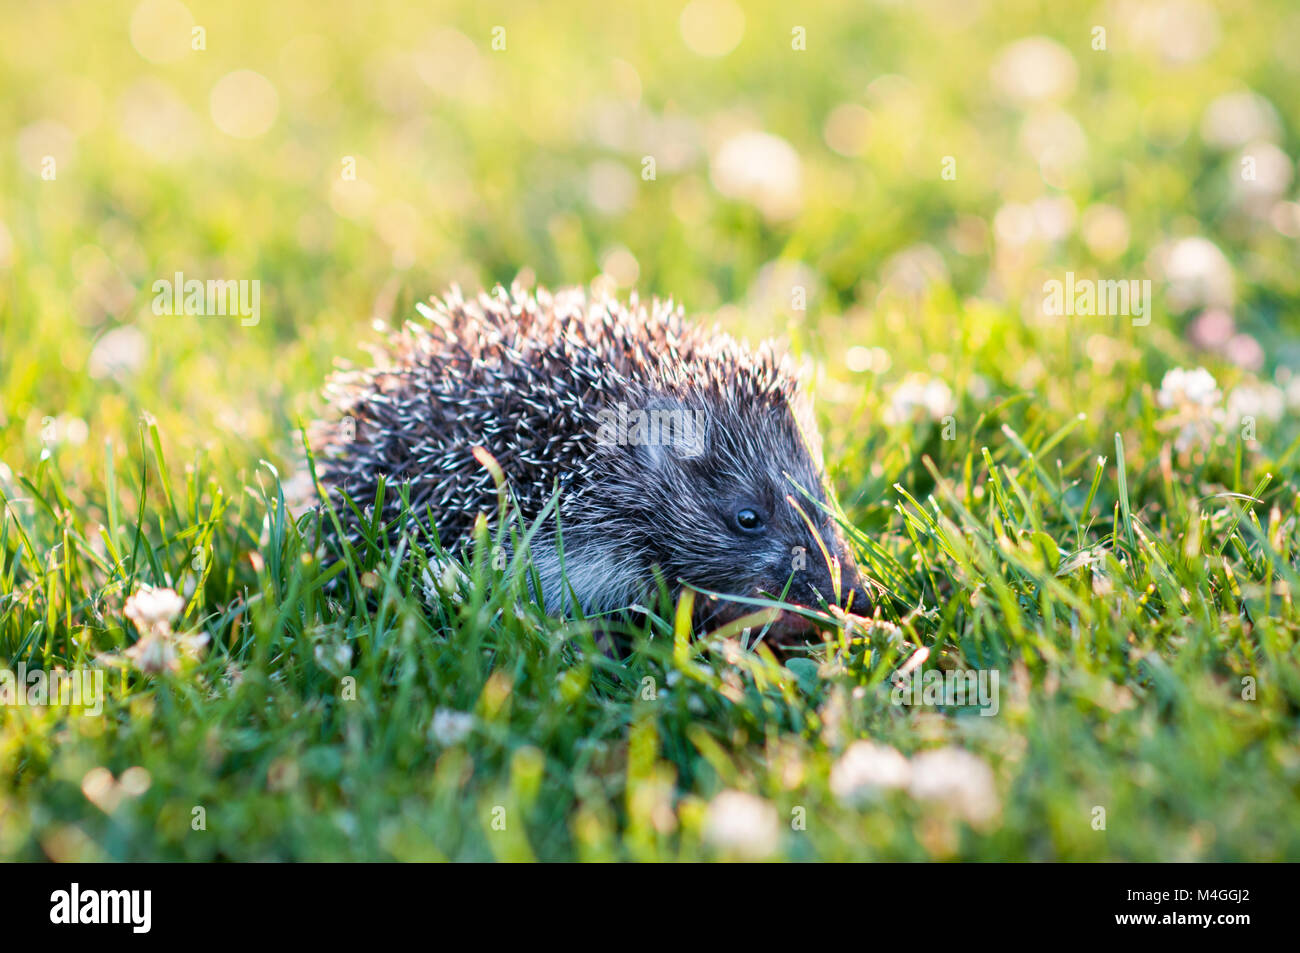 Small grey hedgehog walking in the grass - Stock Image